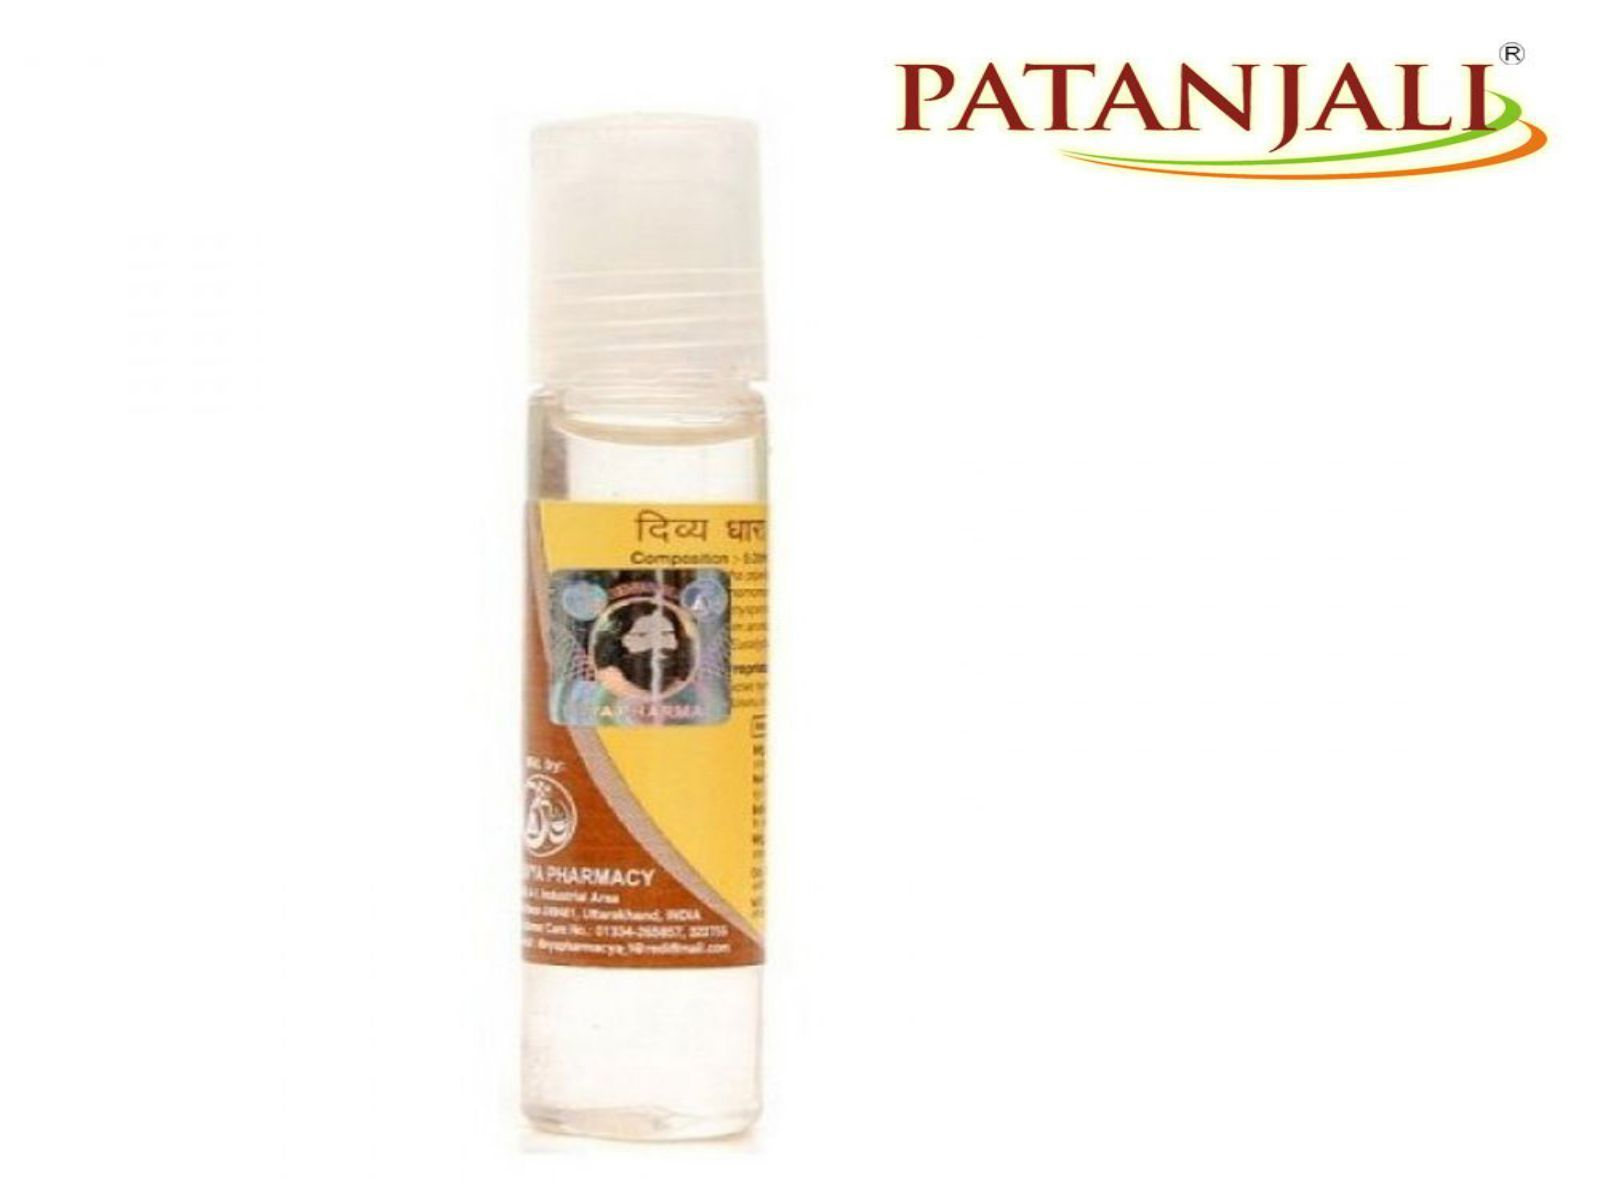 Pure Divya Dhara Roll Oil - 10ml – Buy Indian Products 24x7